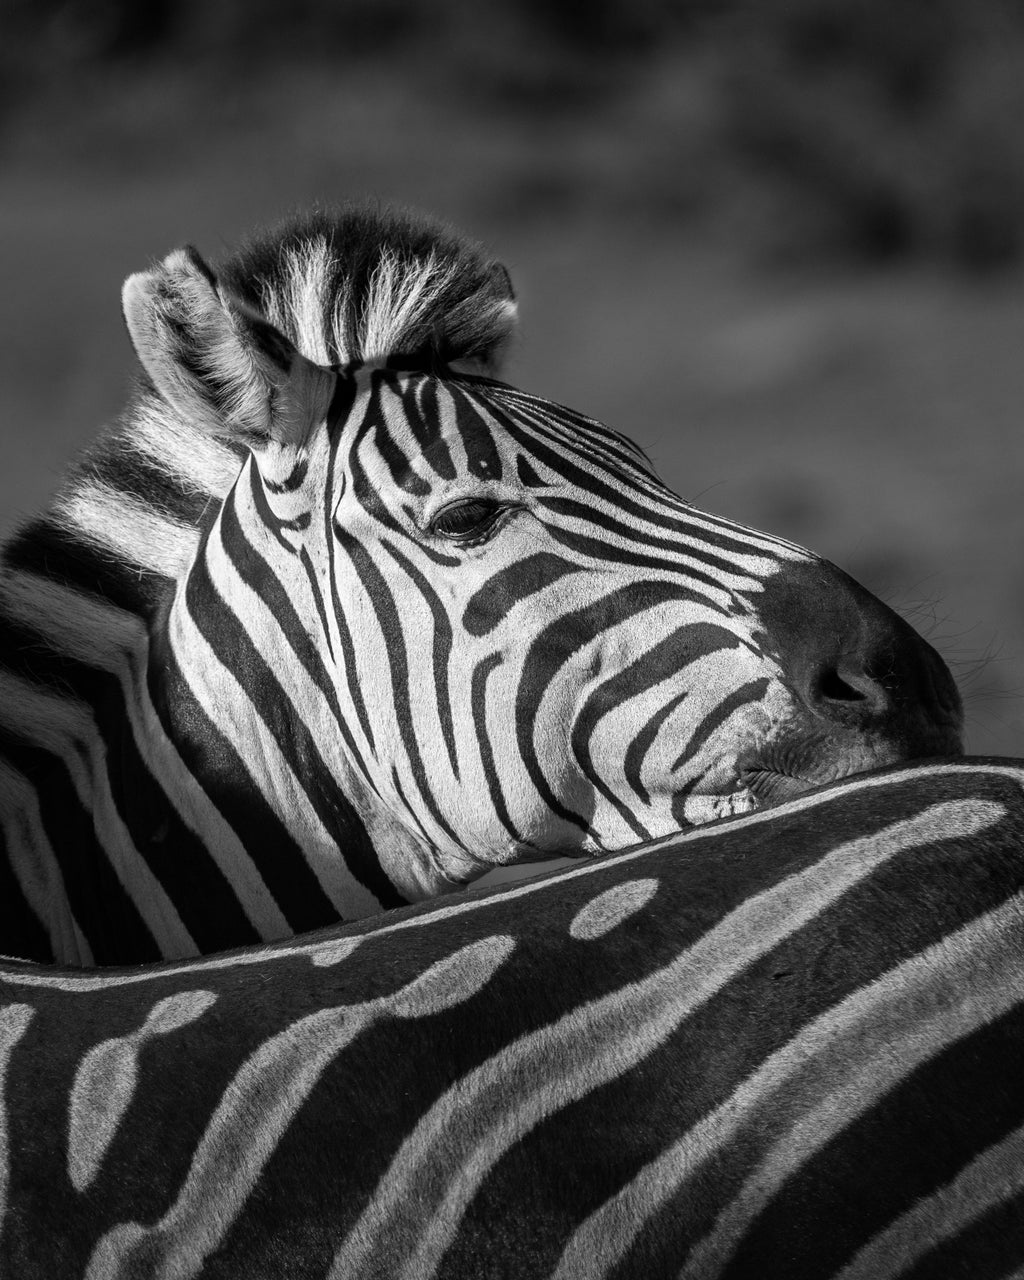 Zebra black and white photography. South Africa Safari.